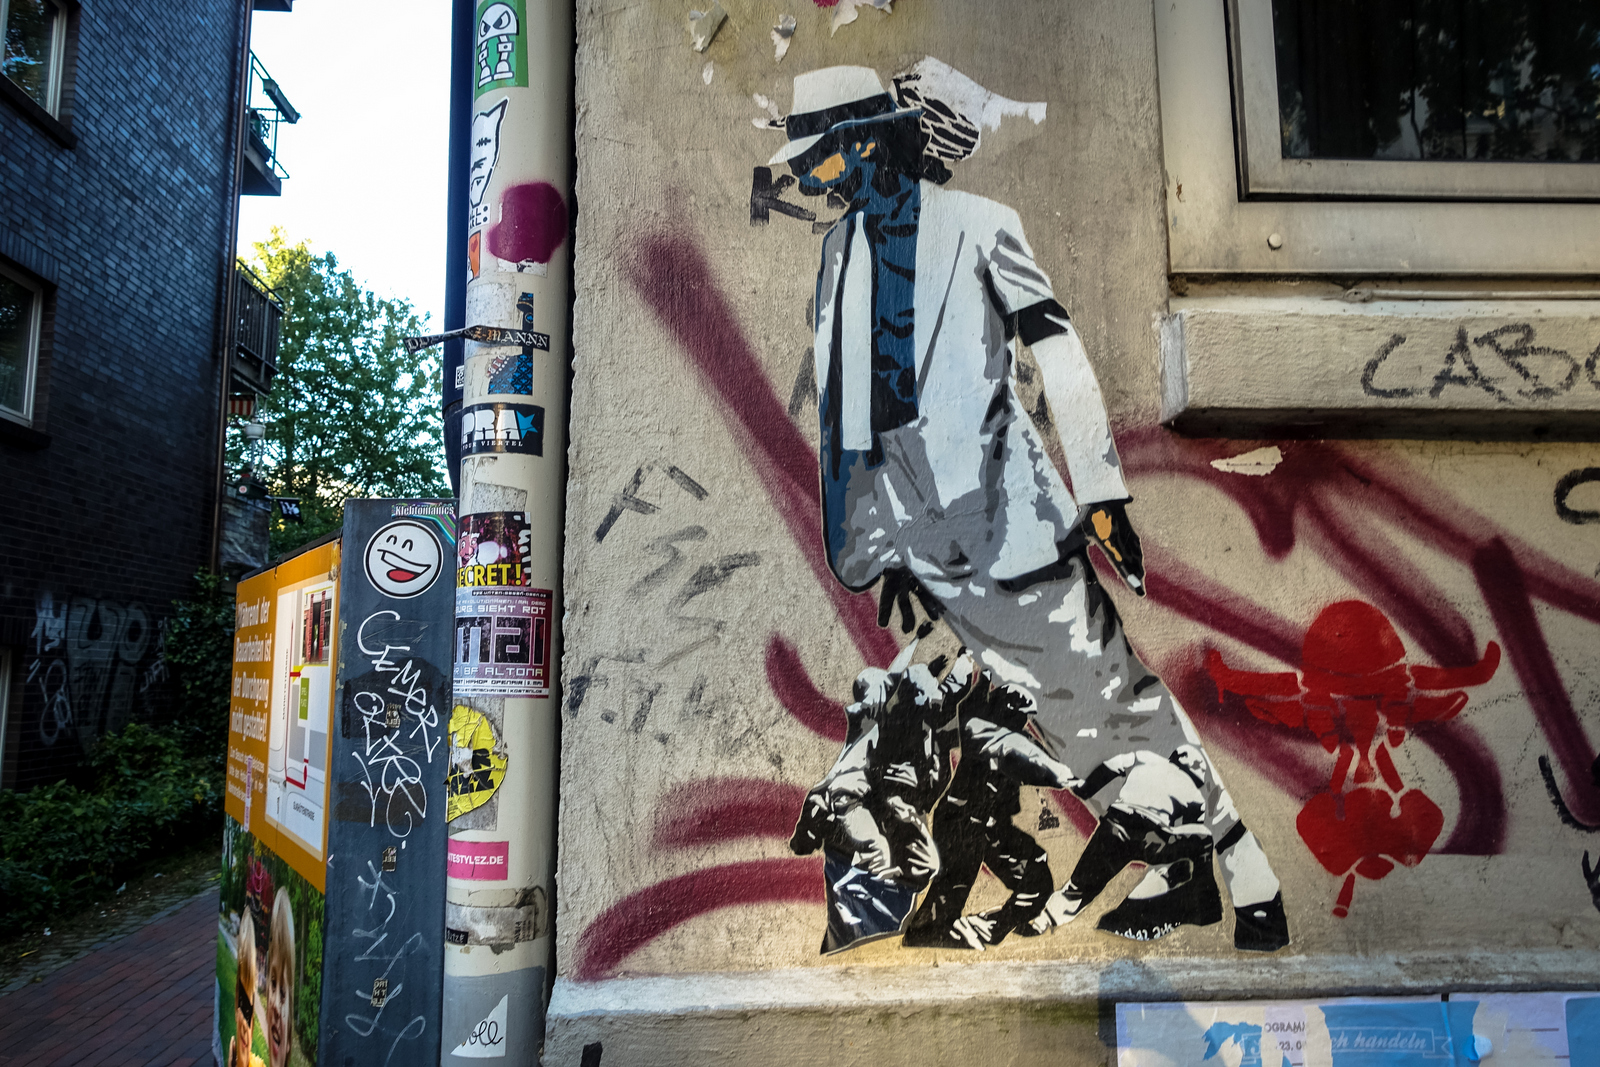 streetart at karoviertel hamburg, sept 2015